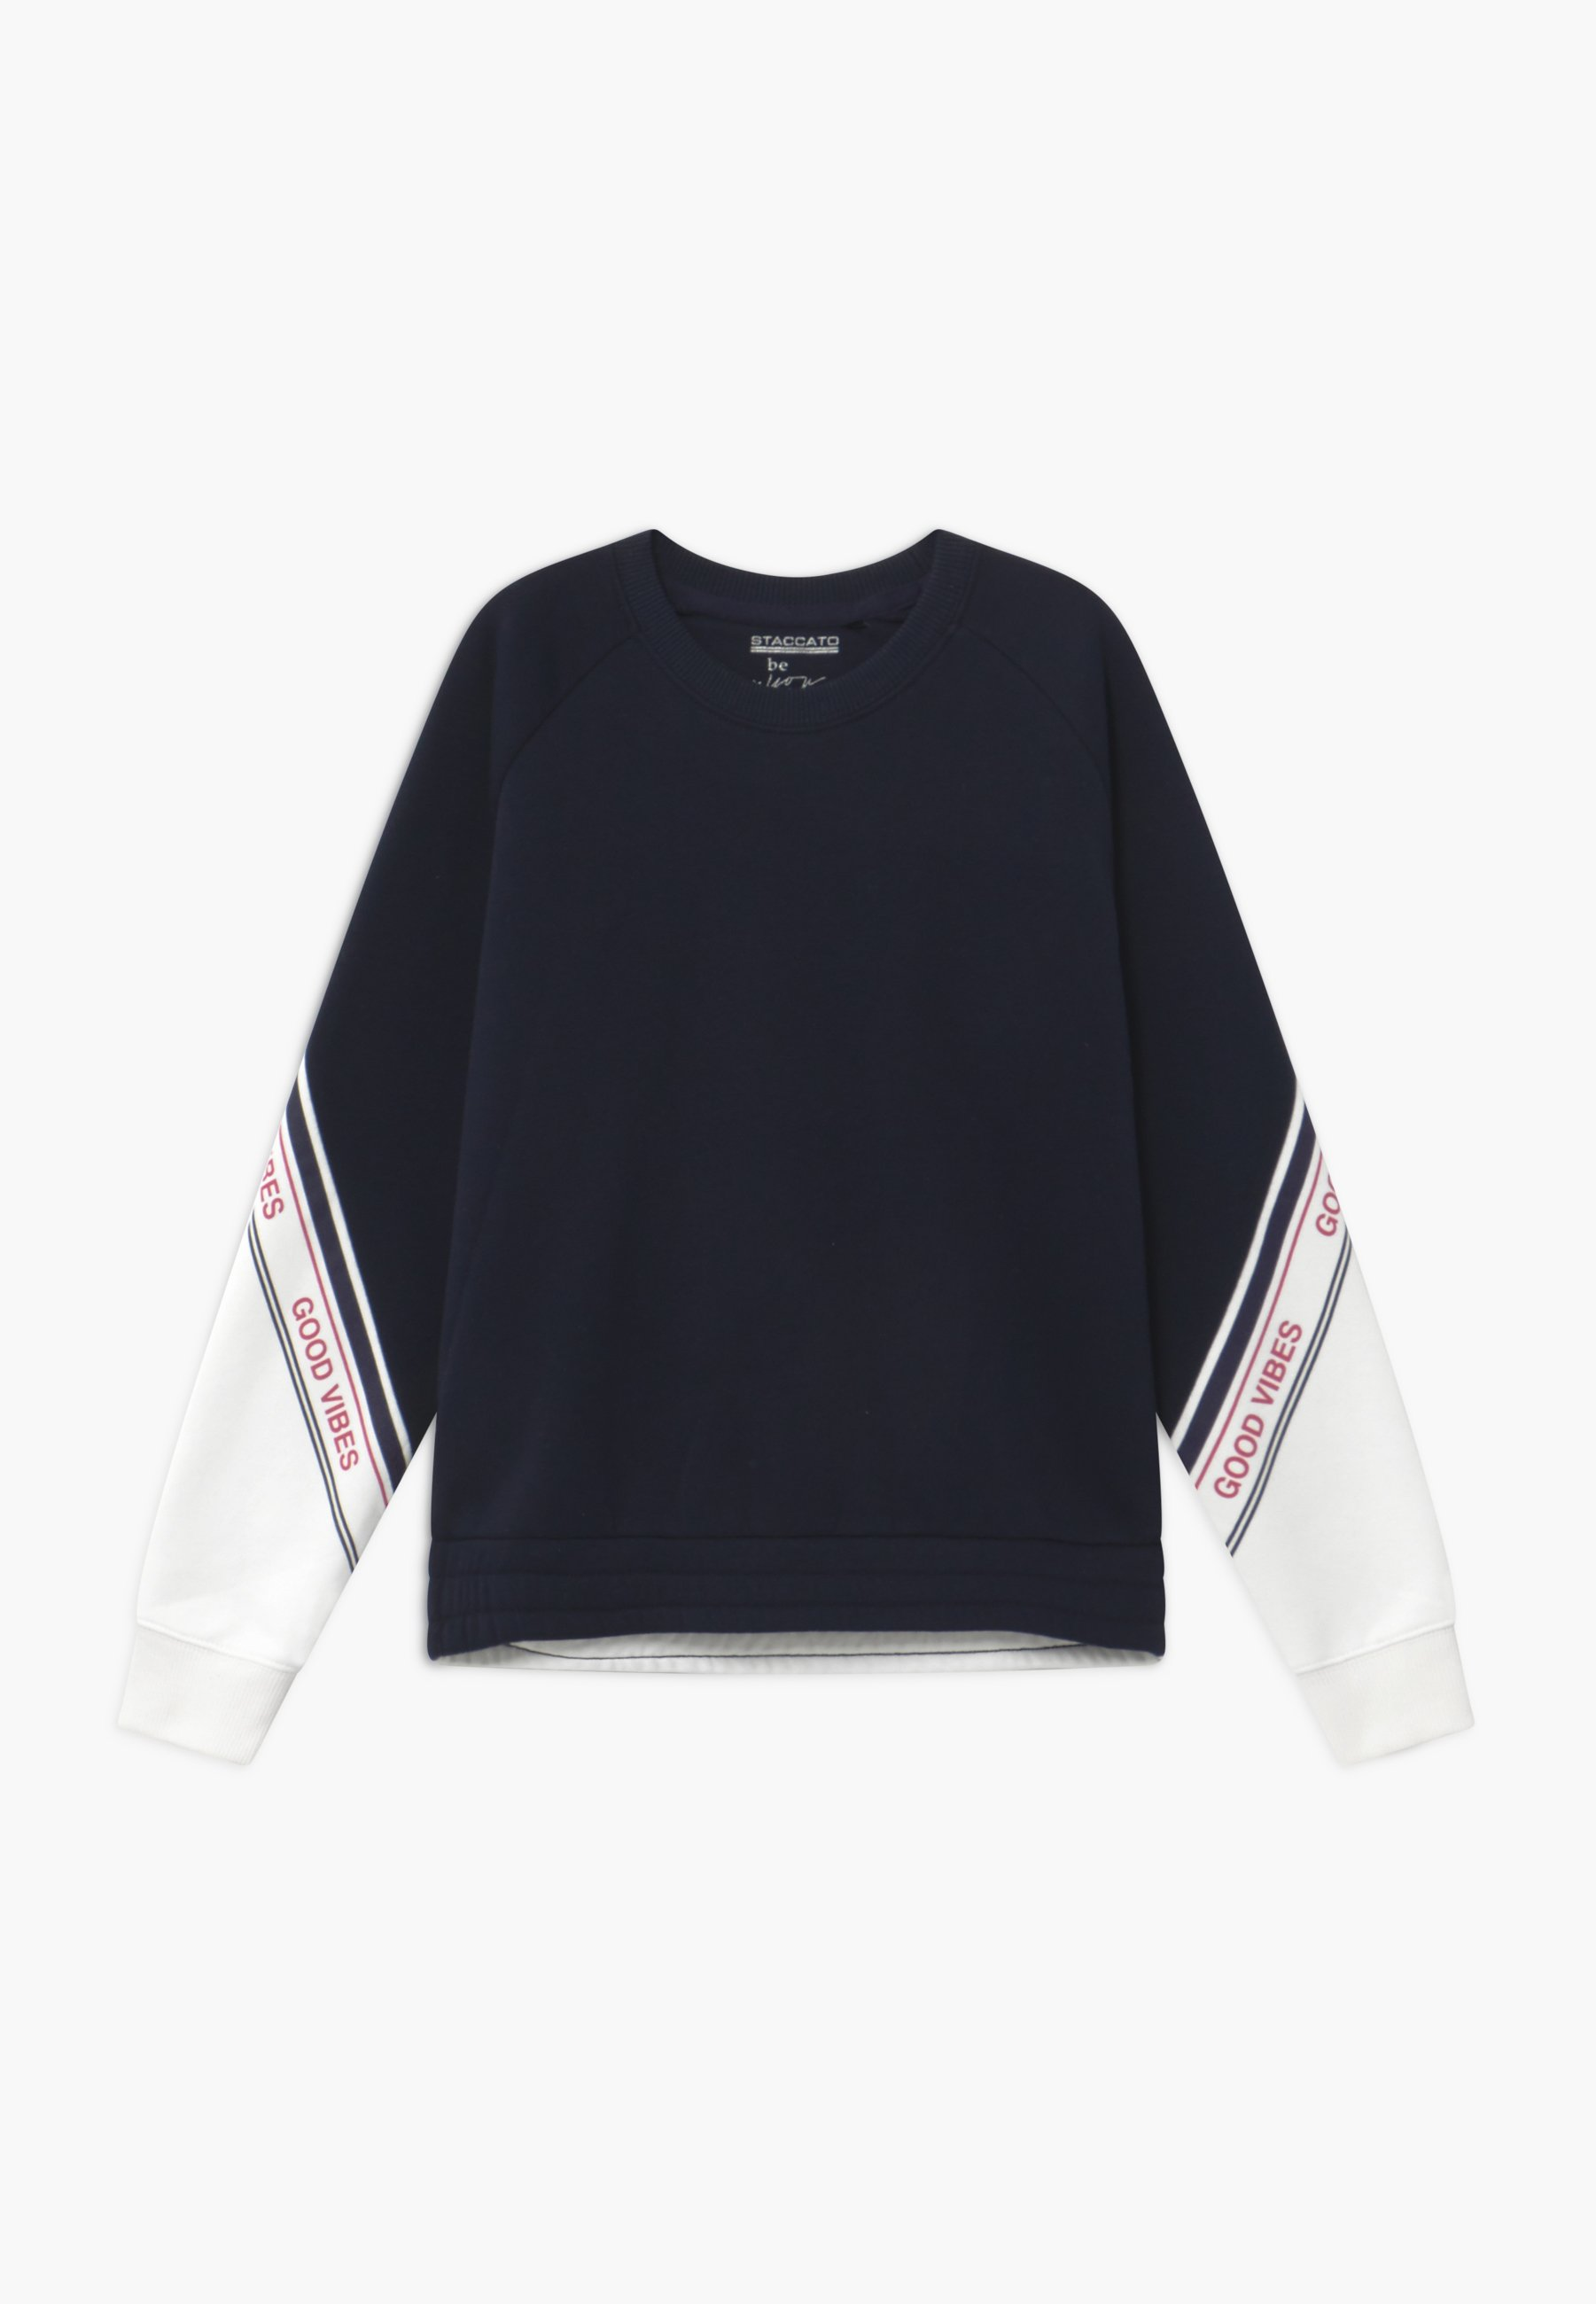 Offwhite Staccato Langarmshirt GOOD VIBES